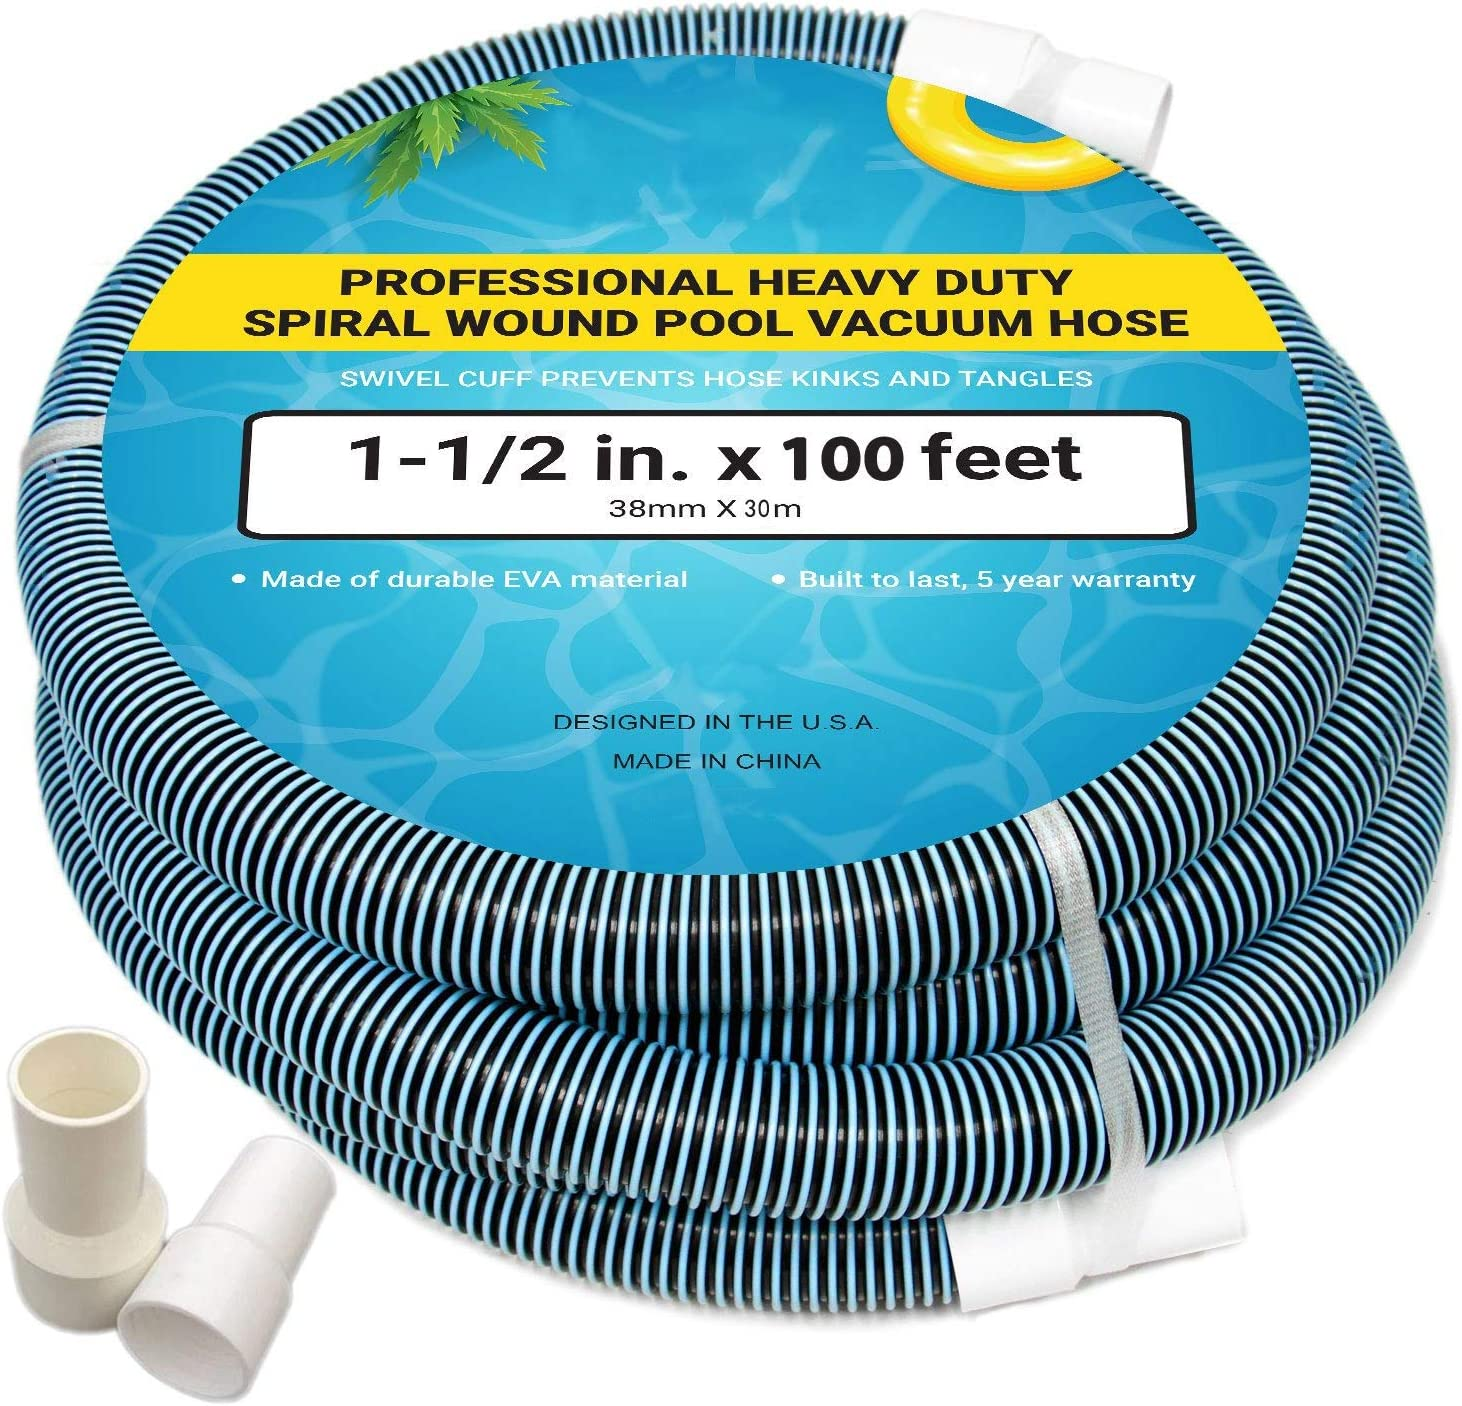 Upgraded Pool Vacuum Hose with Swivel Cuff, EVA Plastic Spiral Wound Suction Hose for Swimming Pool Manual Cleaning, Heavy Duty Flexible Garden Vac Water Hoses 1-1/2 Inch x 100 Feet